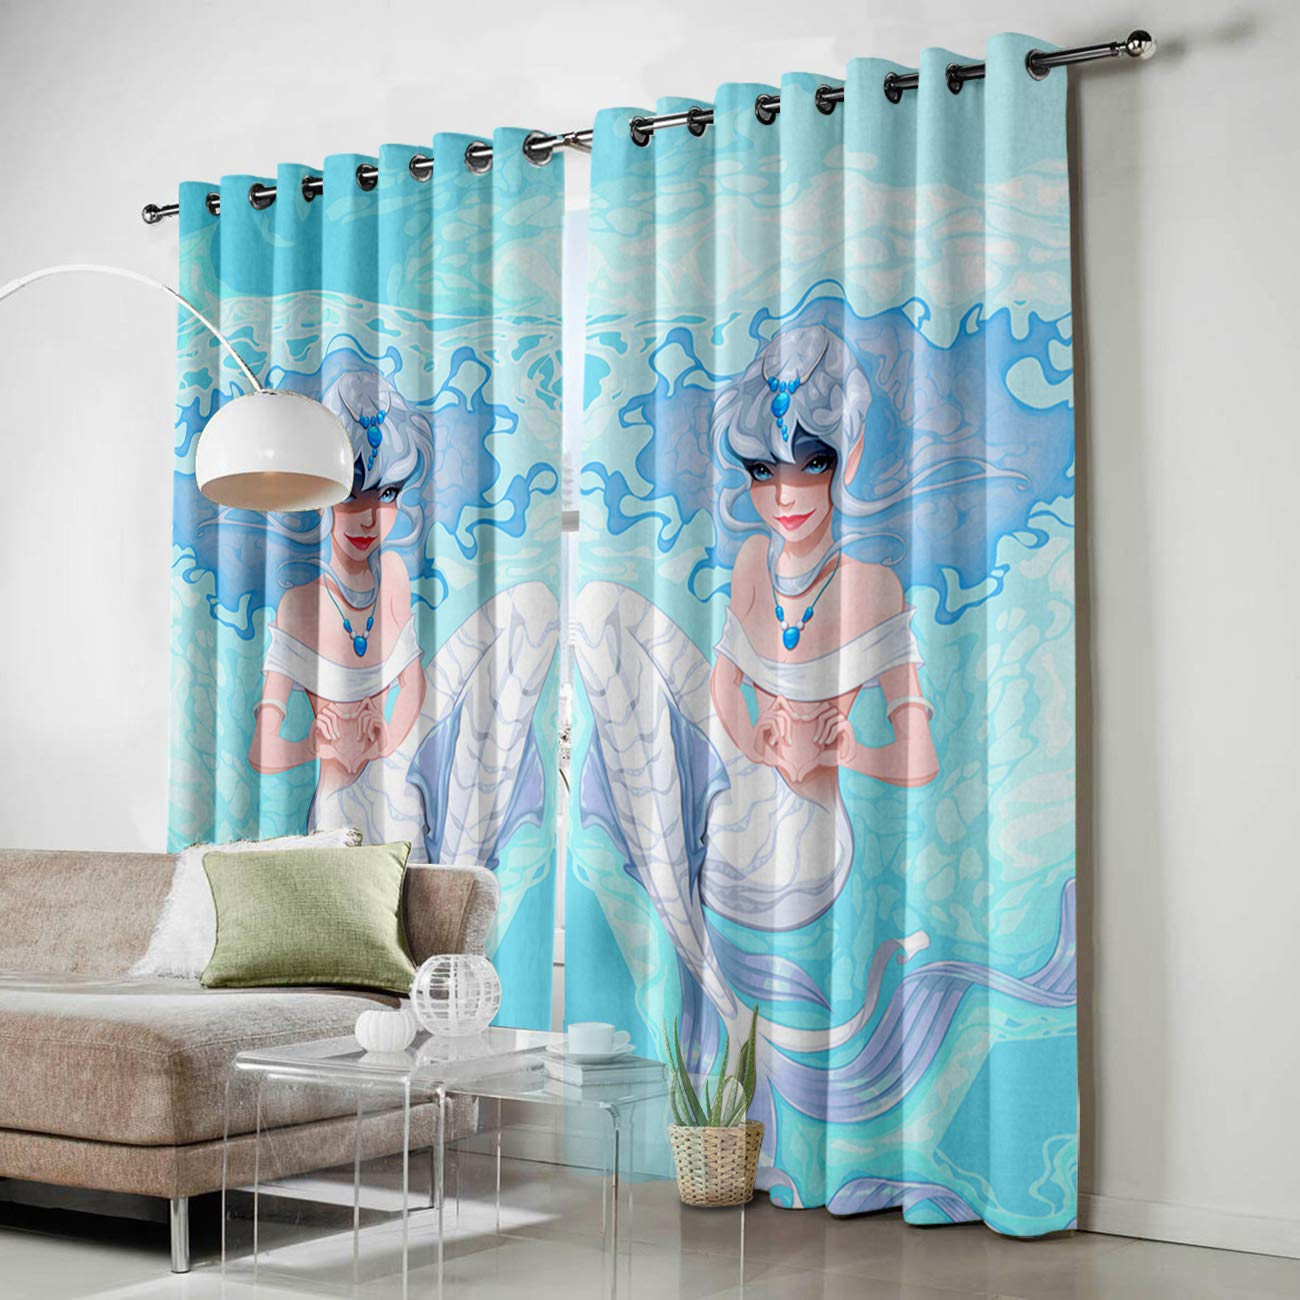 Best Nautical & Sea Themed Window Roller Blinds Reviews in 2019 4